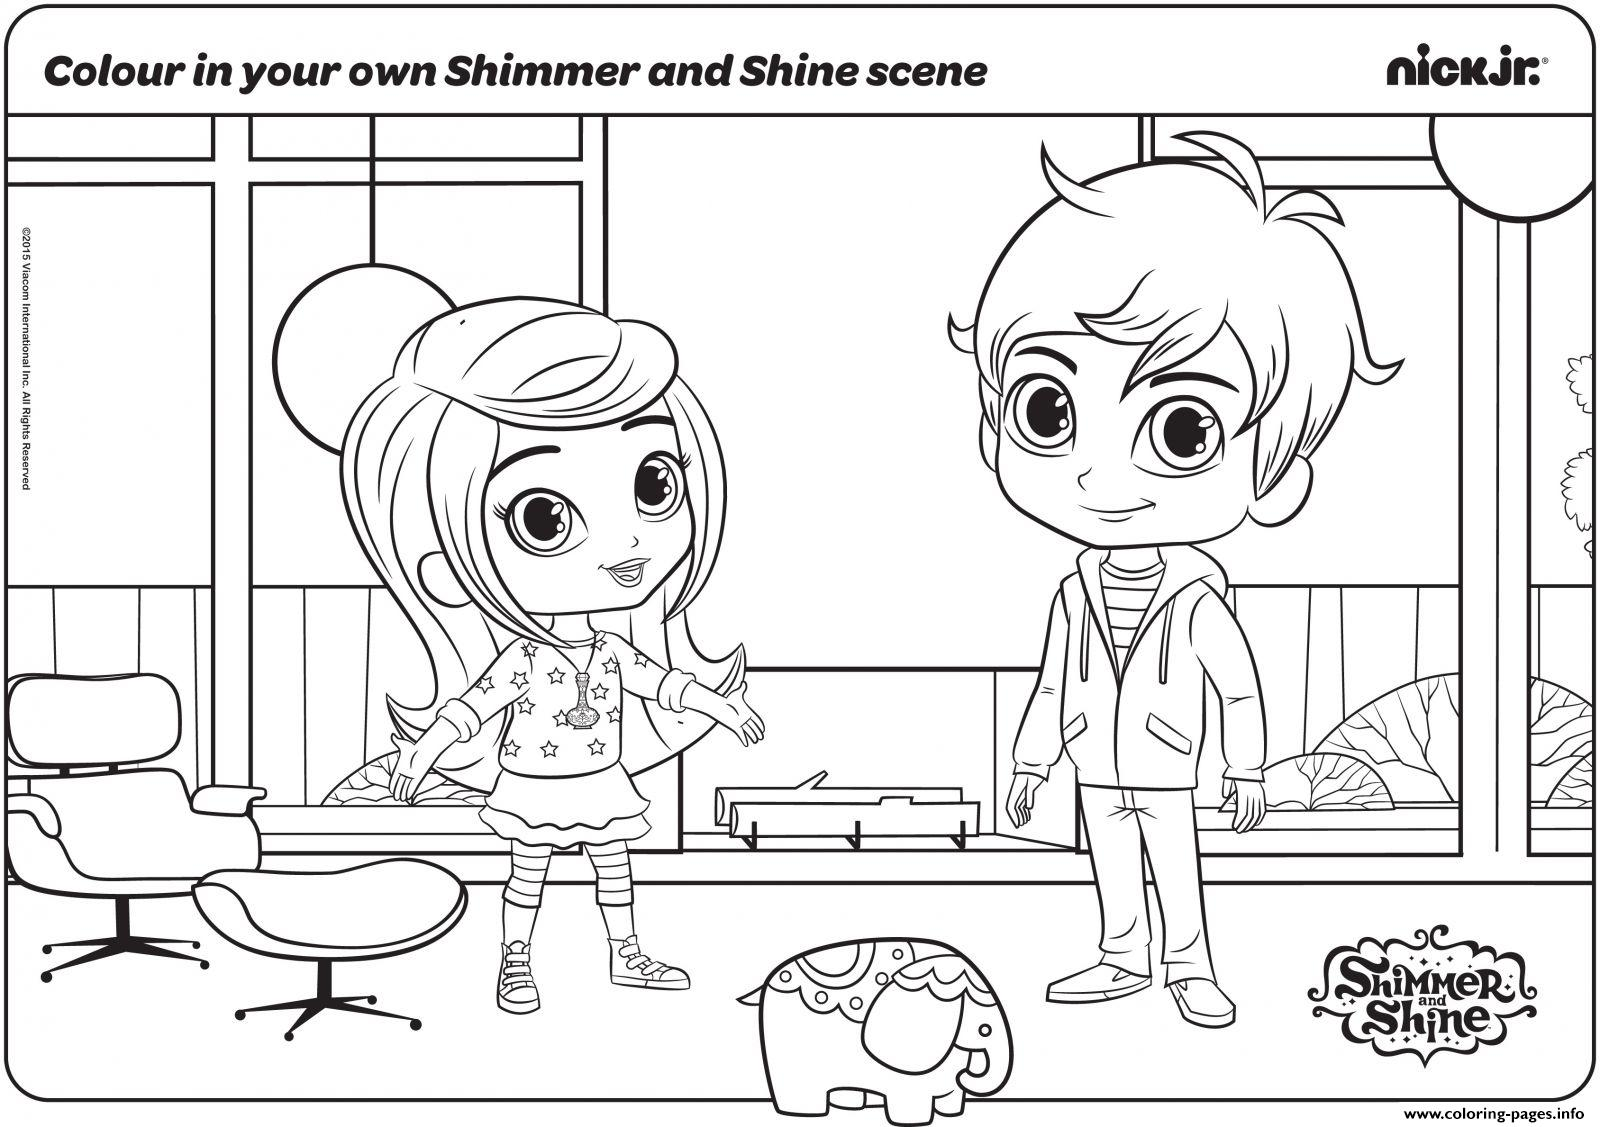 Colour in your own shimmer and shine scene coloring pages printable